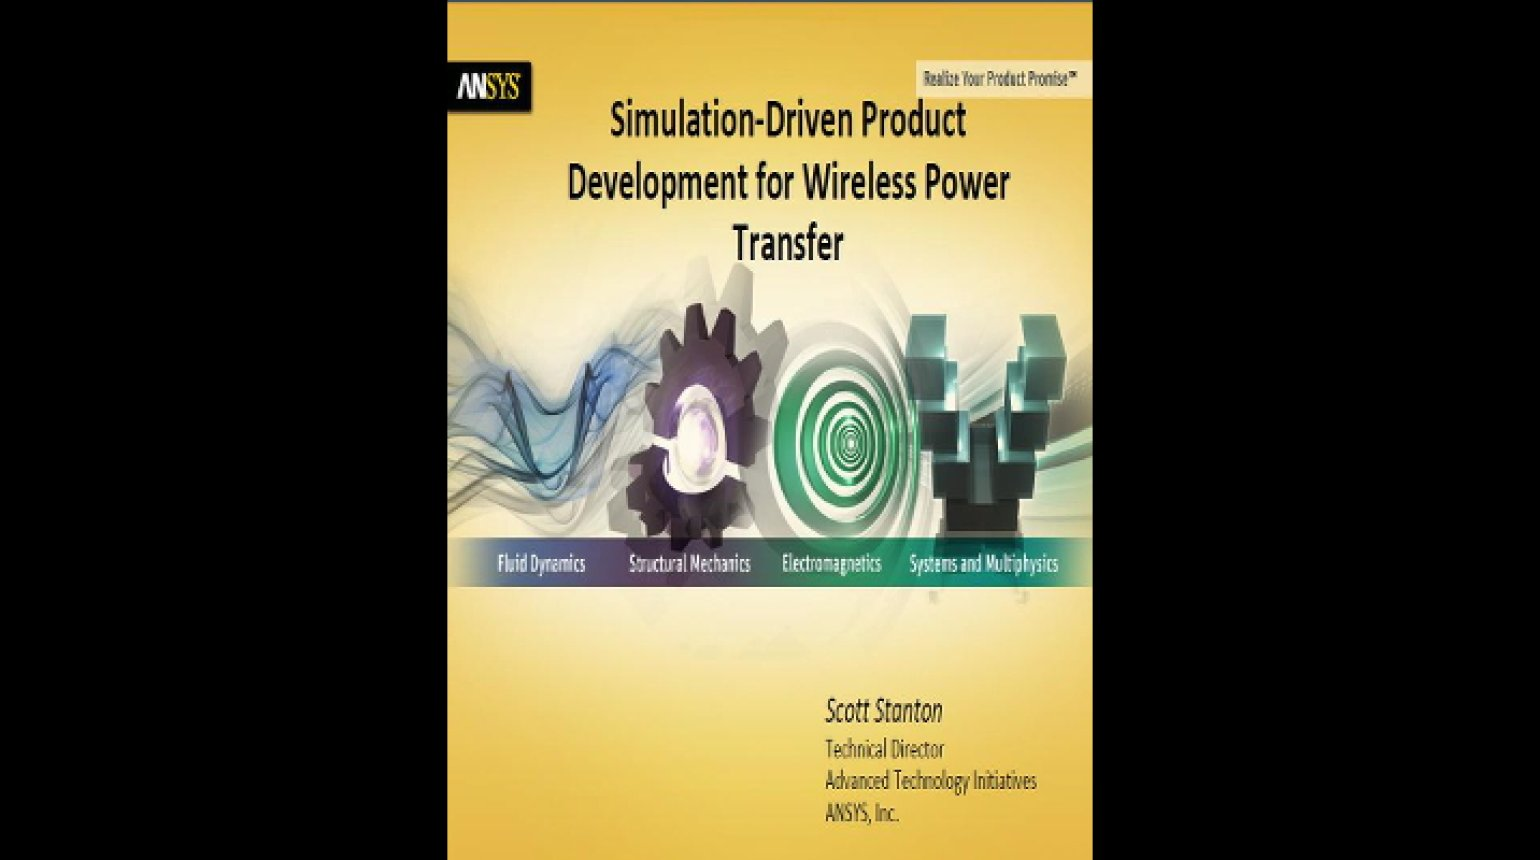 Video - Driven Product Development for Wireless Power Transfer